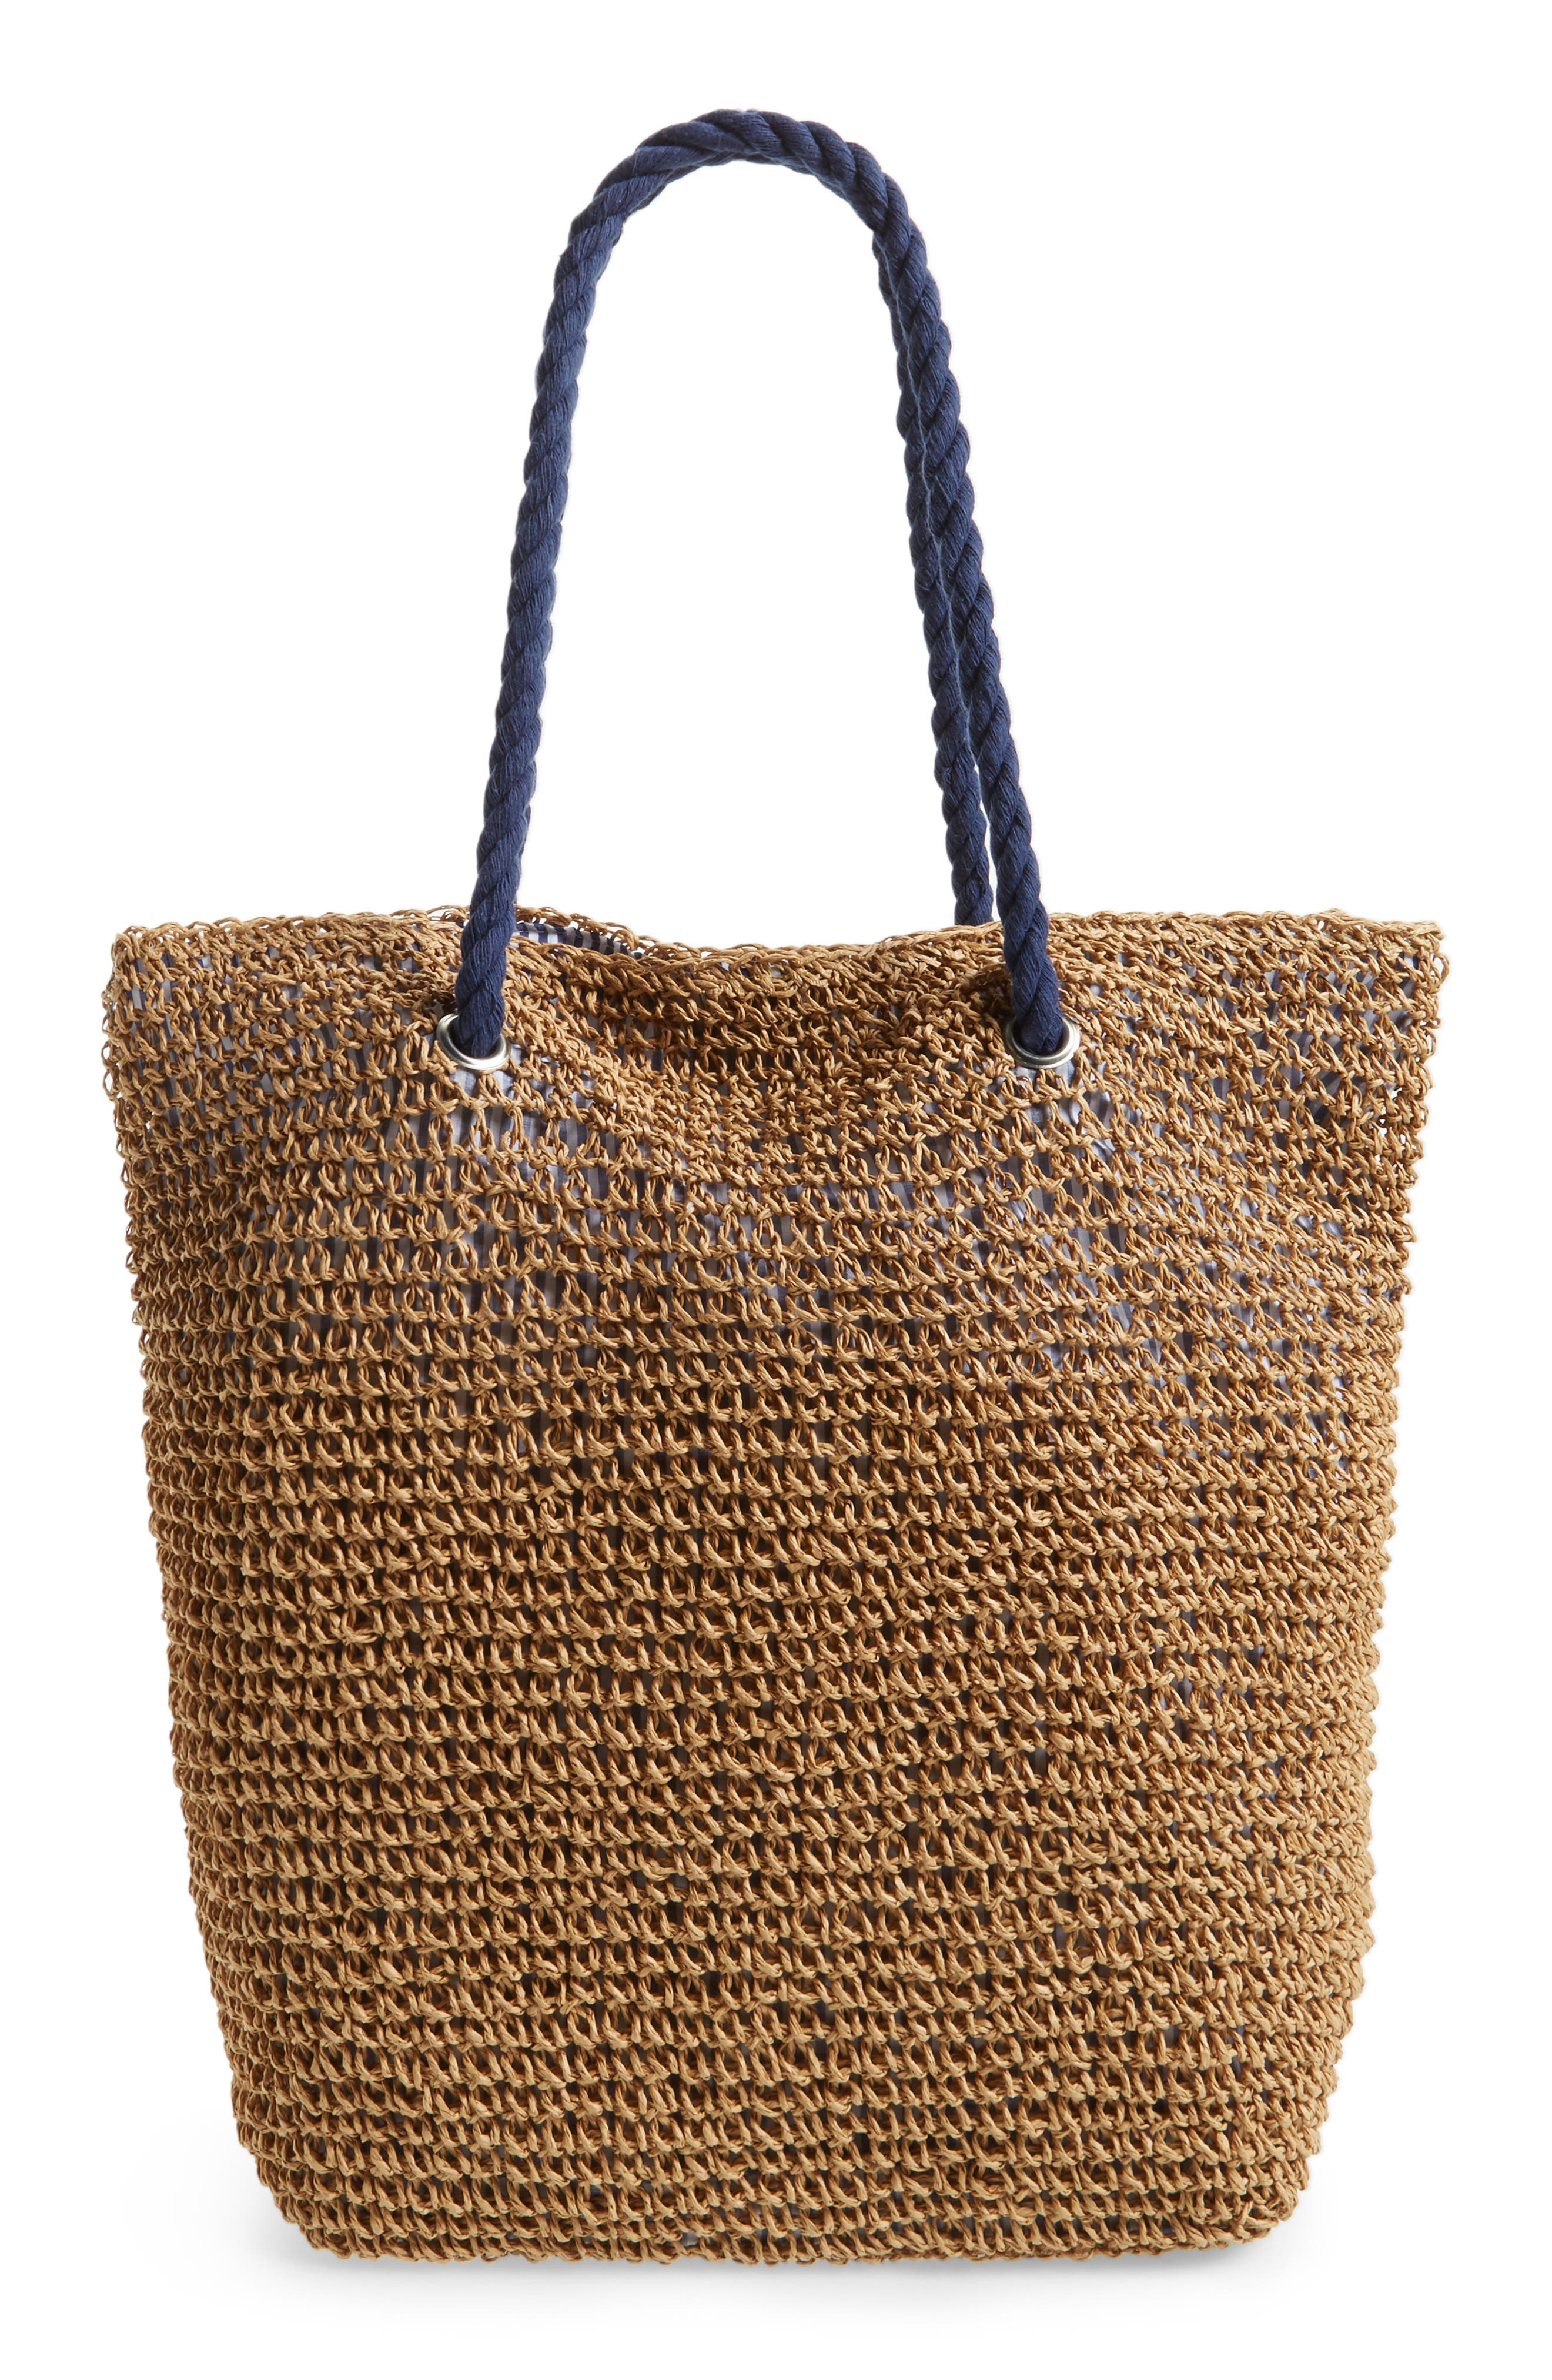 Alternate Image 1 Selected - Cesca Rope & Straw Tote